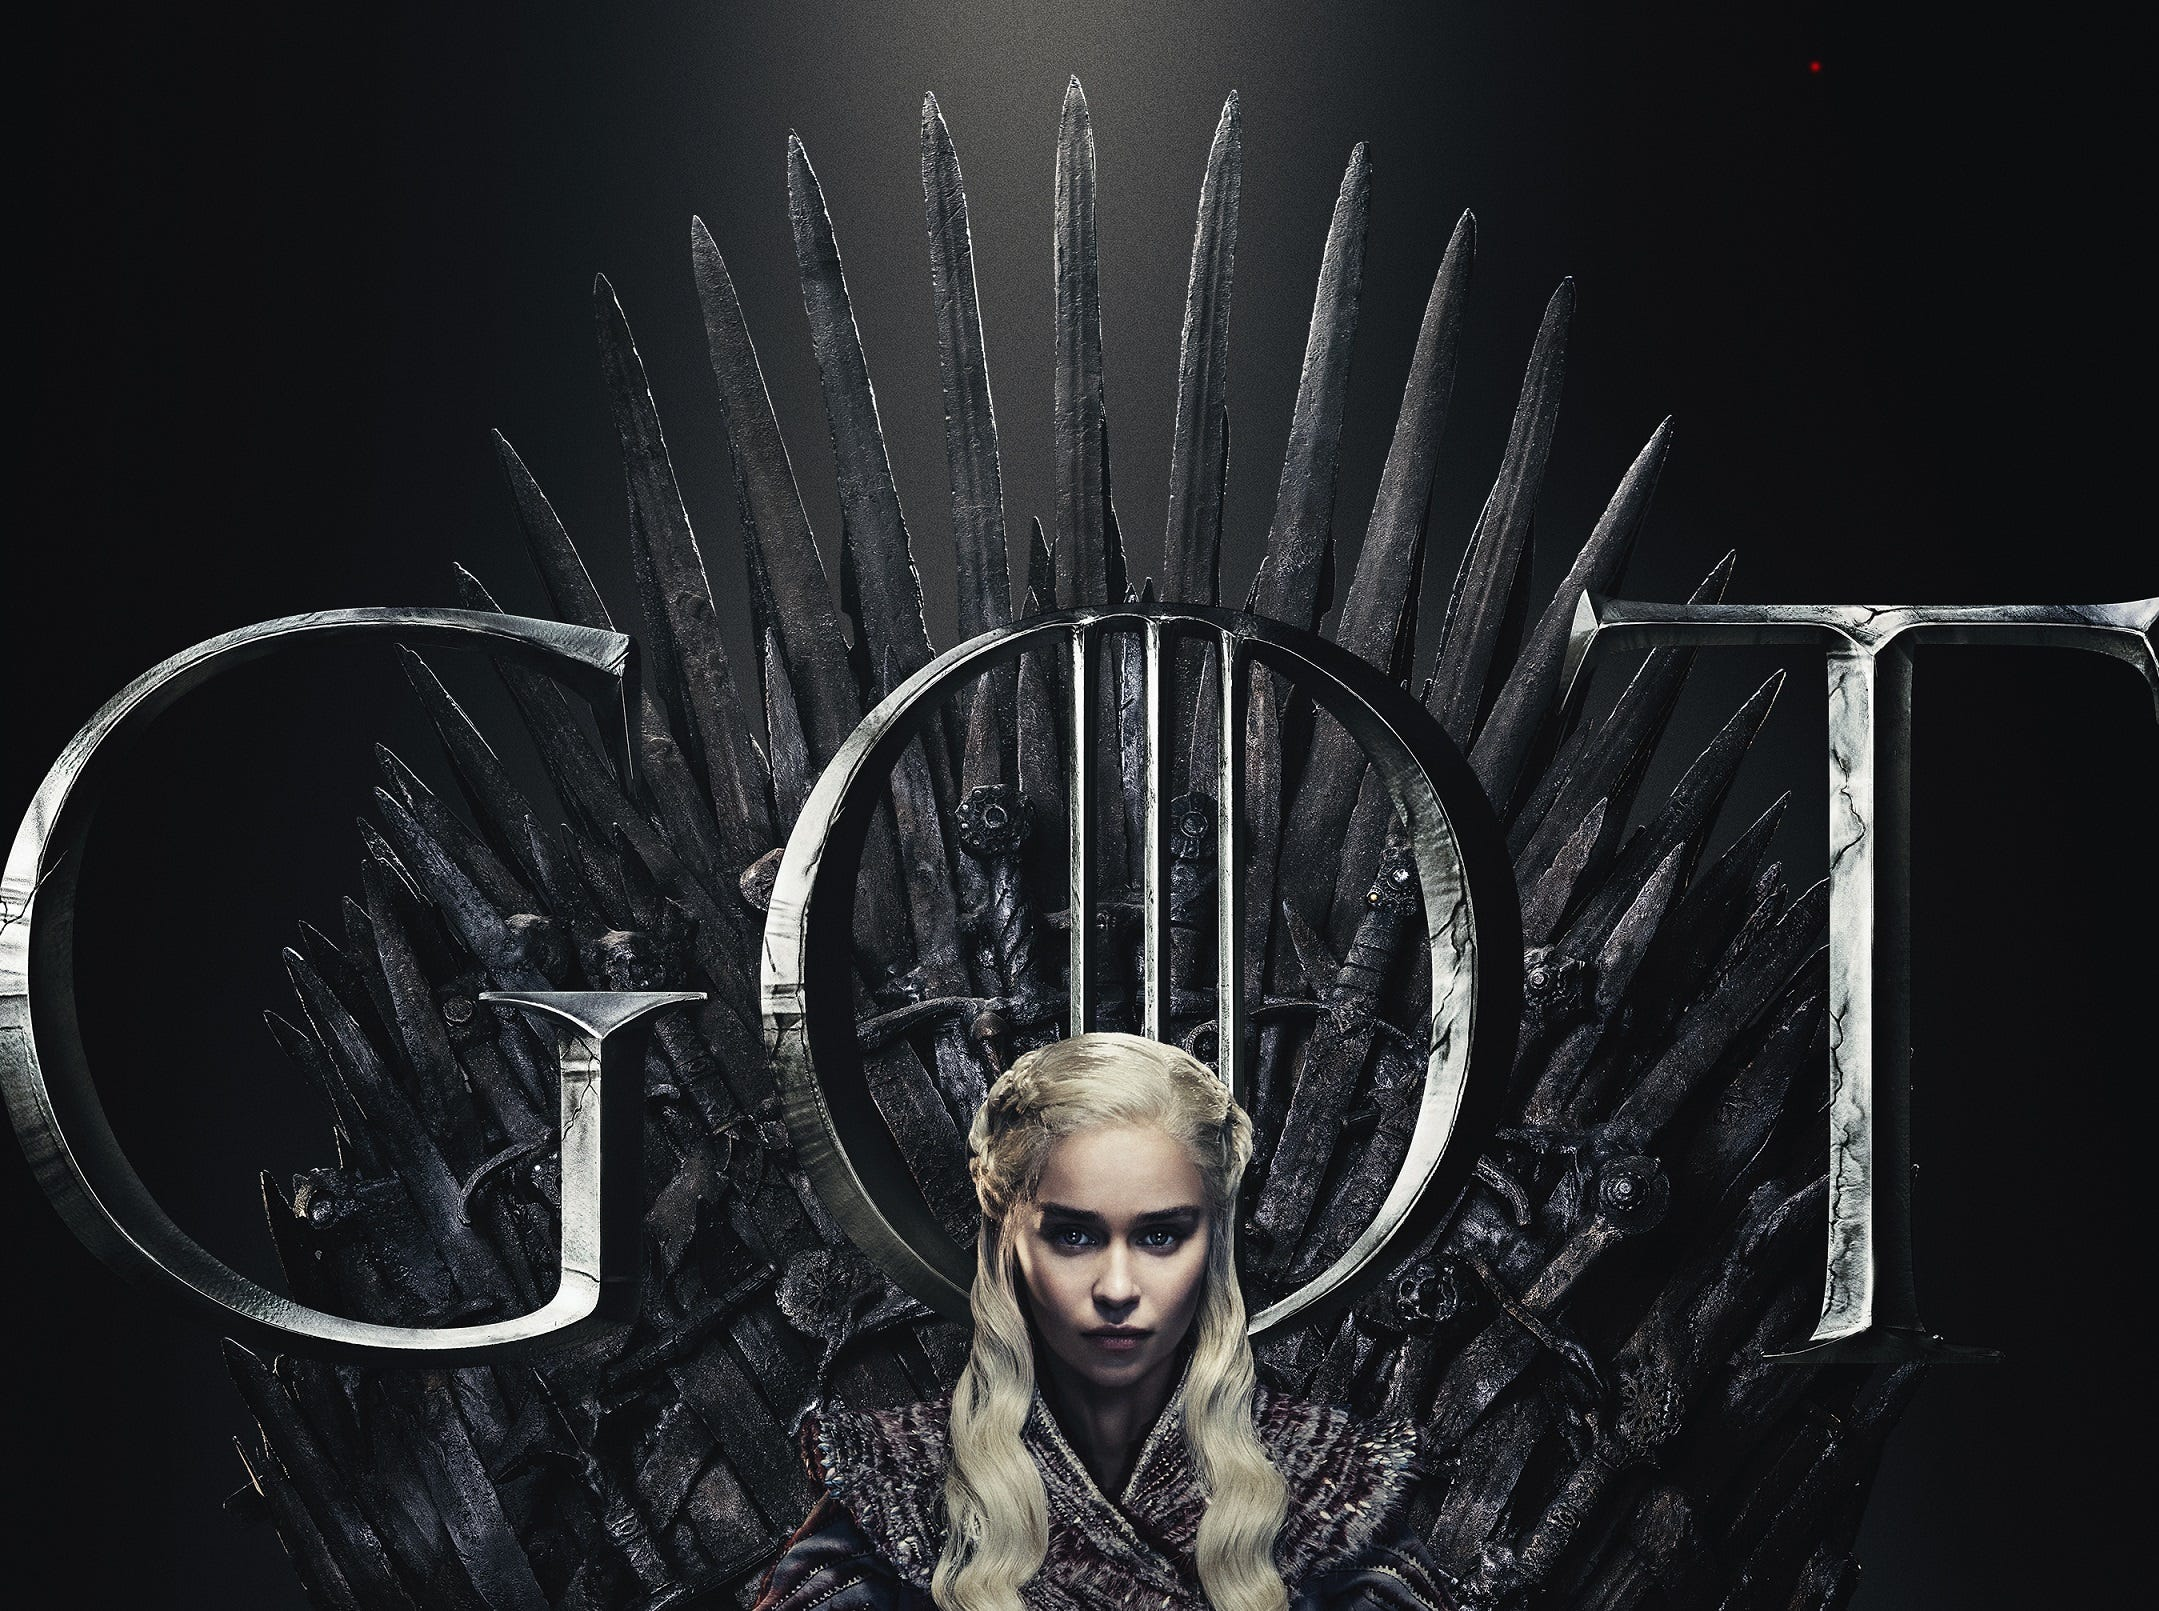 Do not mess with Daenerys Targaryen (Emilia Clarke), who is absolutely ready to take on the White Walkers.